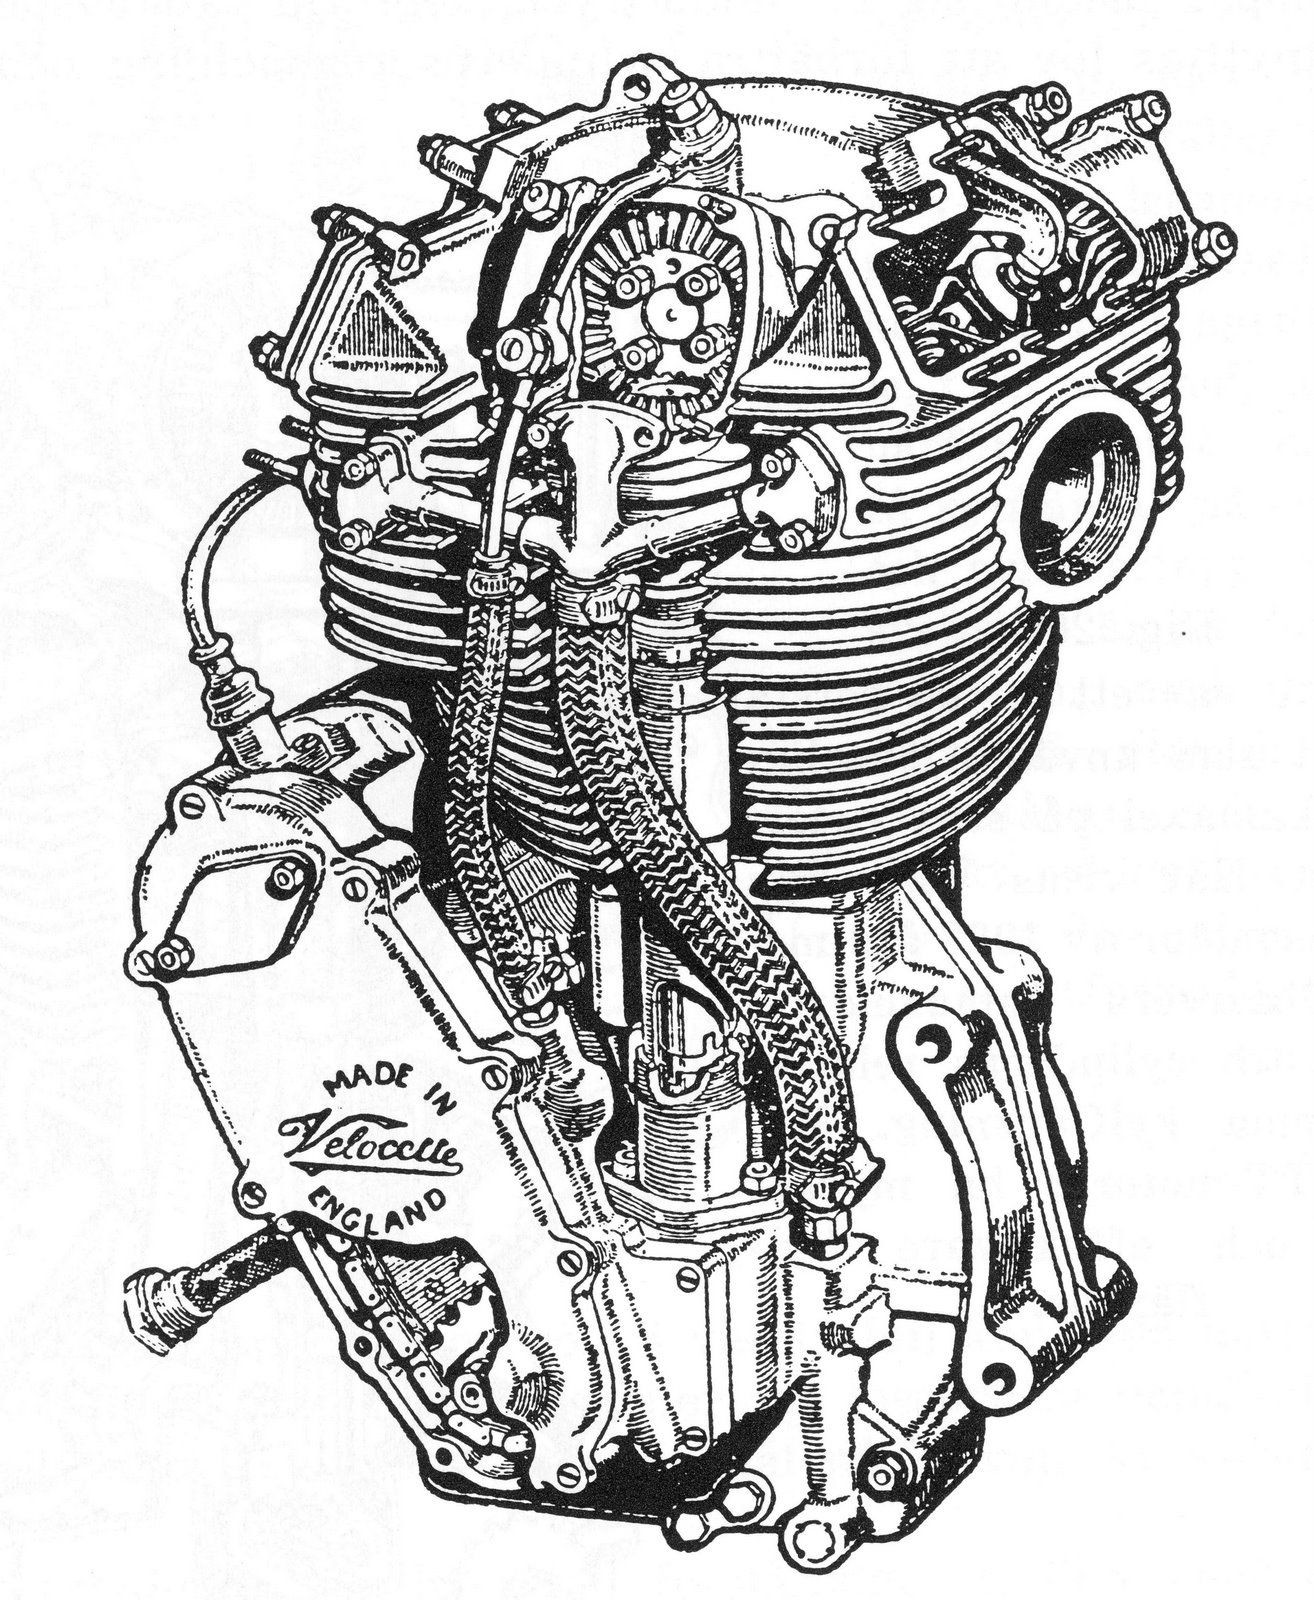 Single Cylinder Motorcycle Engine Diagram My Wiring Art Velocette Owners Club Dorking Centre Plete List Of All Manufacturers Wide